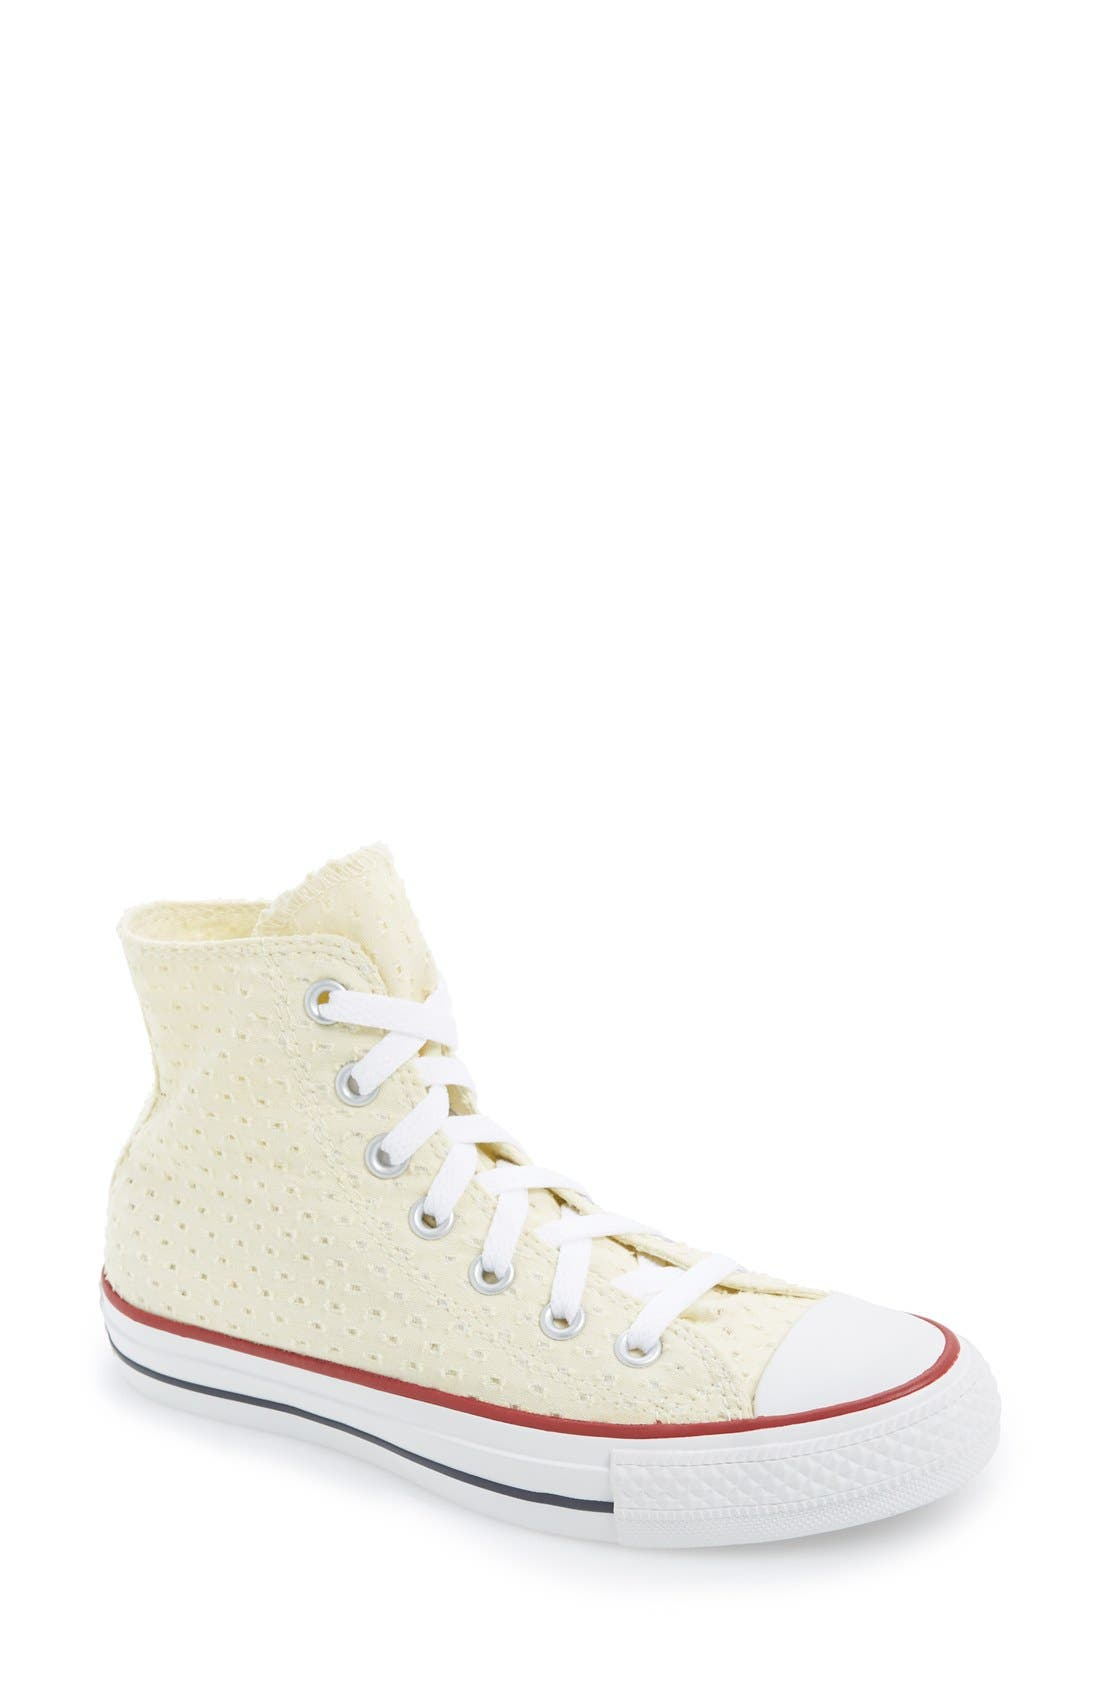 Main Image - Converse Chuck Taylor® All Star® Eyelet Perforated High Top Sneaker (Women)